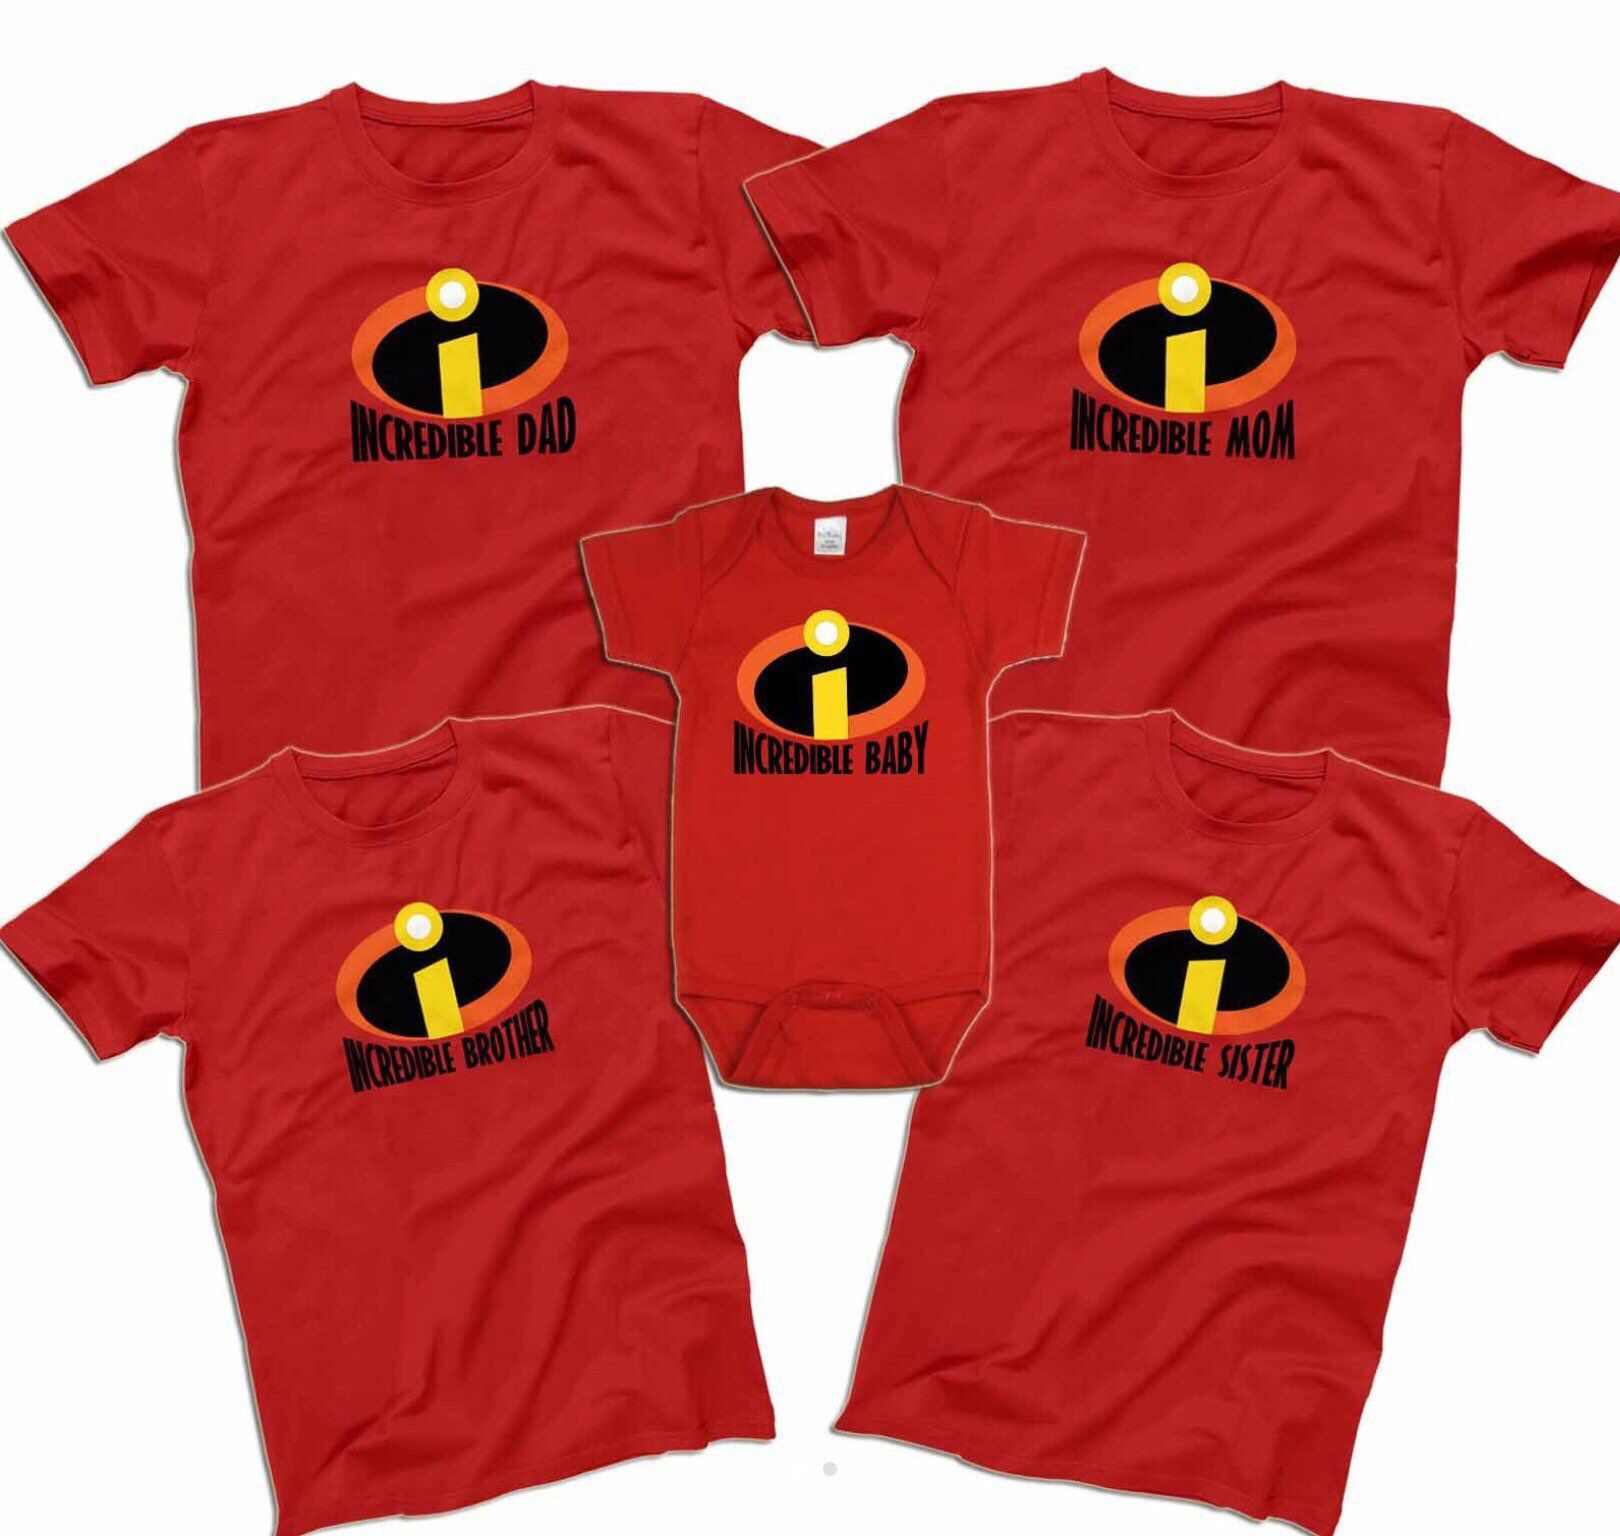 5f66437b4 Excited to share the latest addition to my #etsy shop: Disney Incredibles  Family Shirts #clothing #shirt #incredibles #familyvacation  #disneyfamilyshirts ...